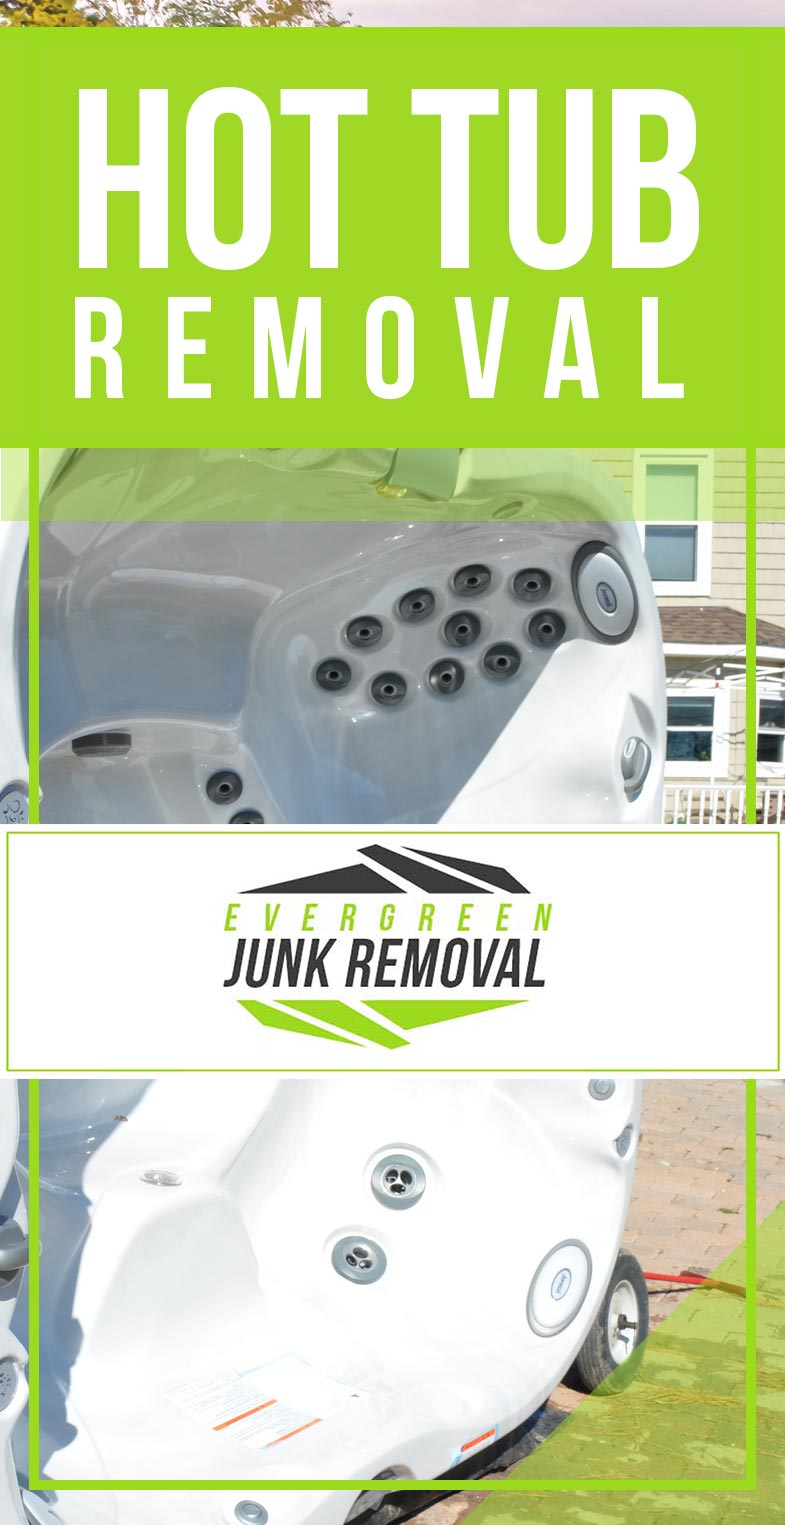 Irving Hot Tub Removal